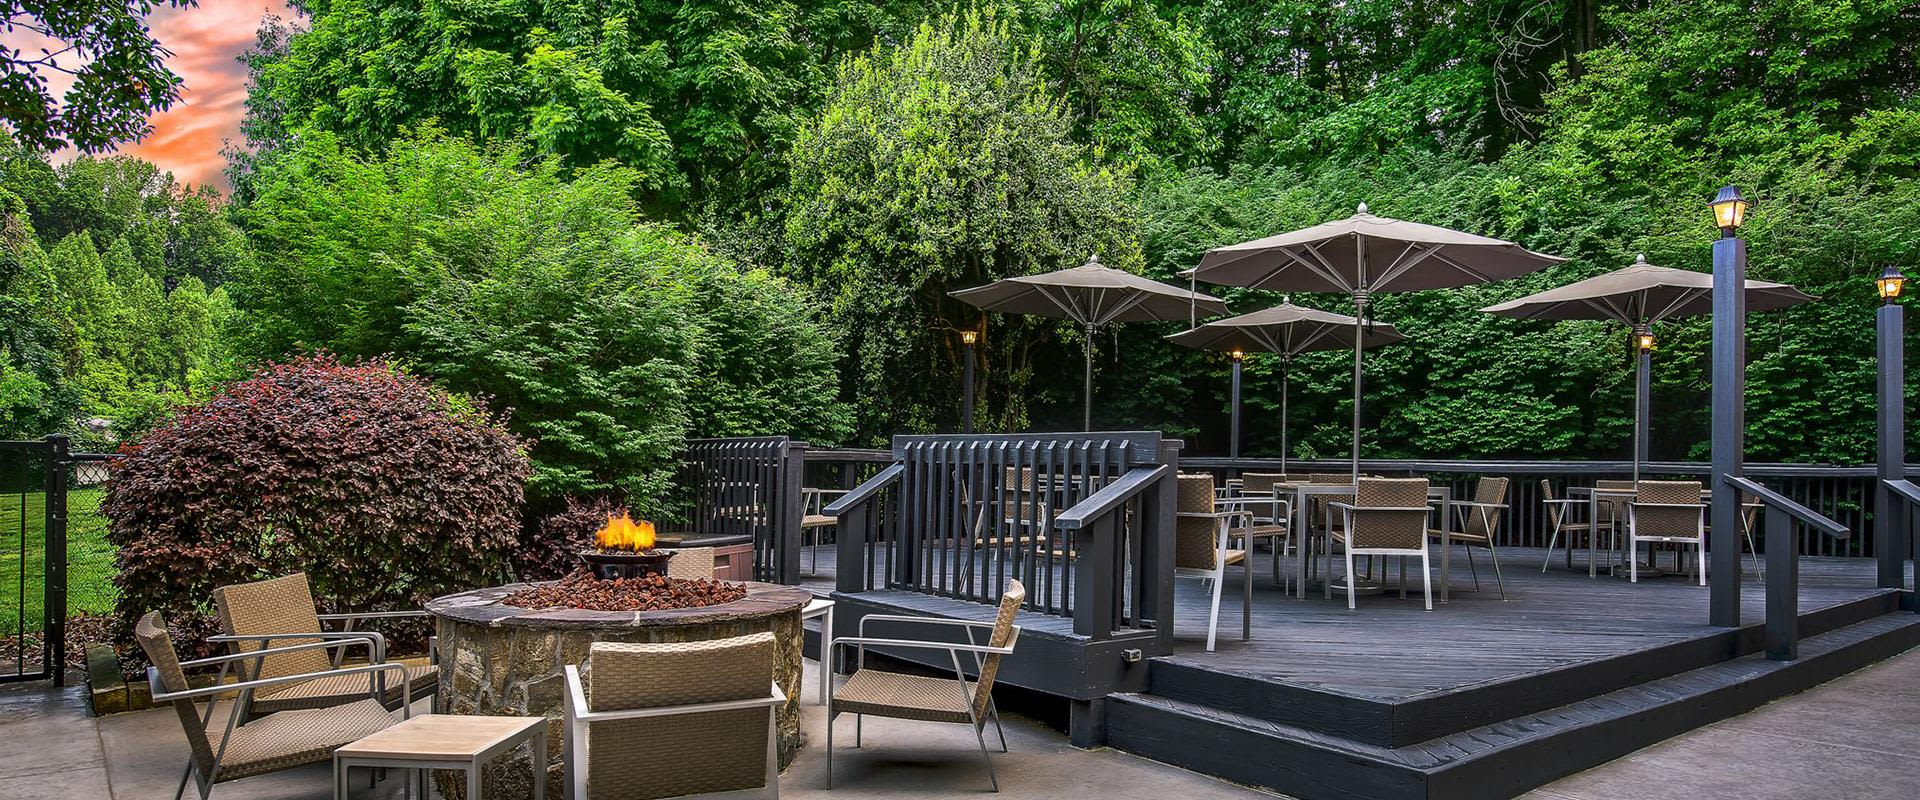 Charlotte Hotel Exterior Patio Seating & Firepit